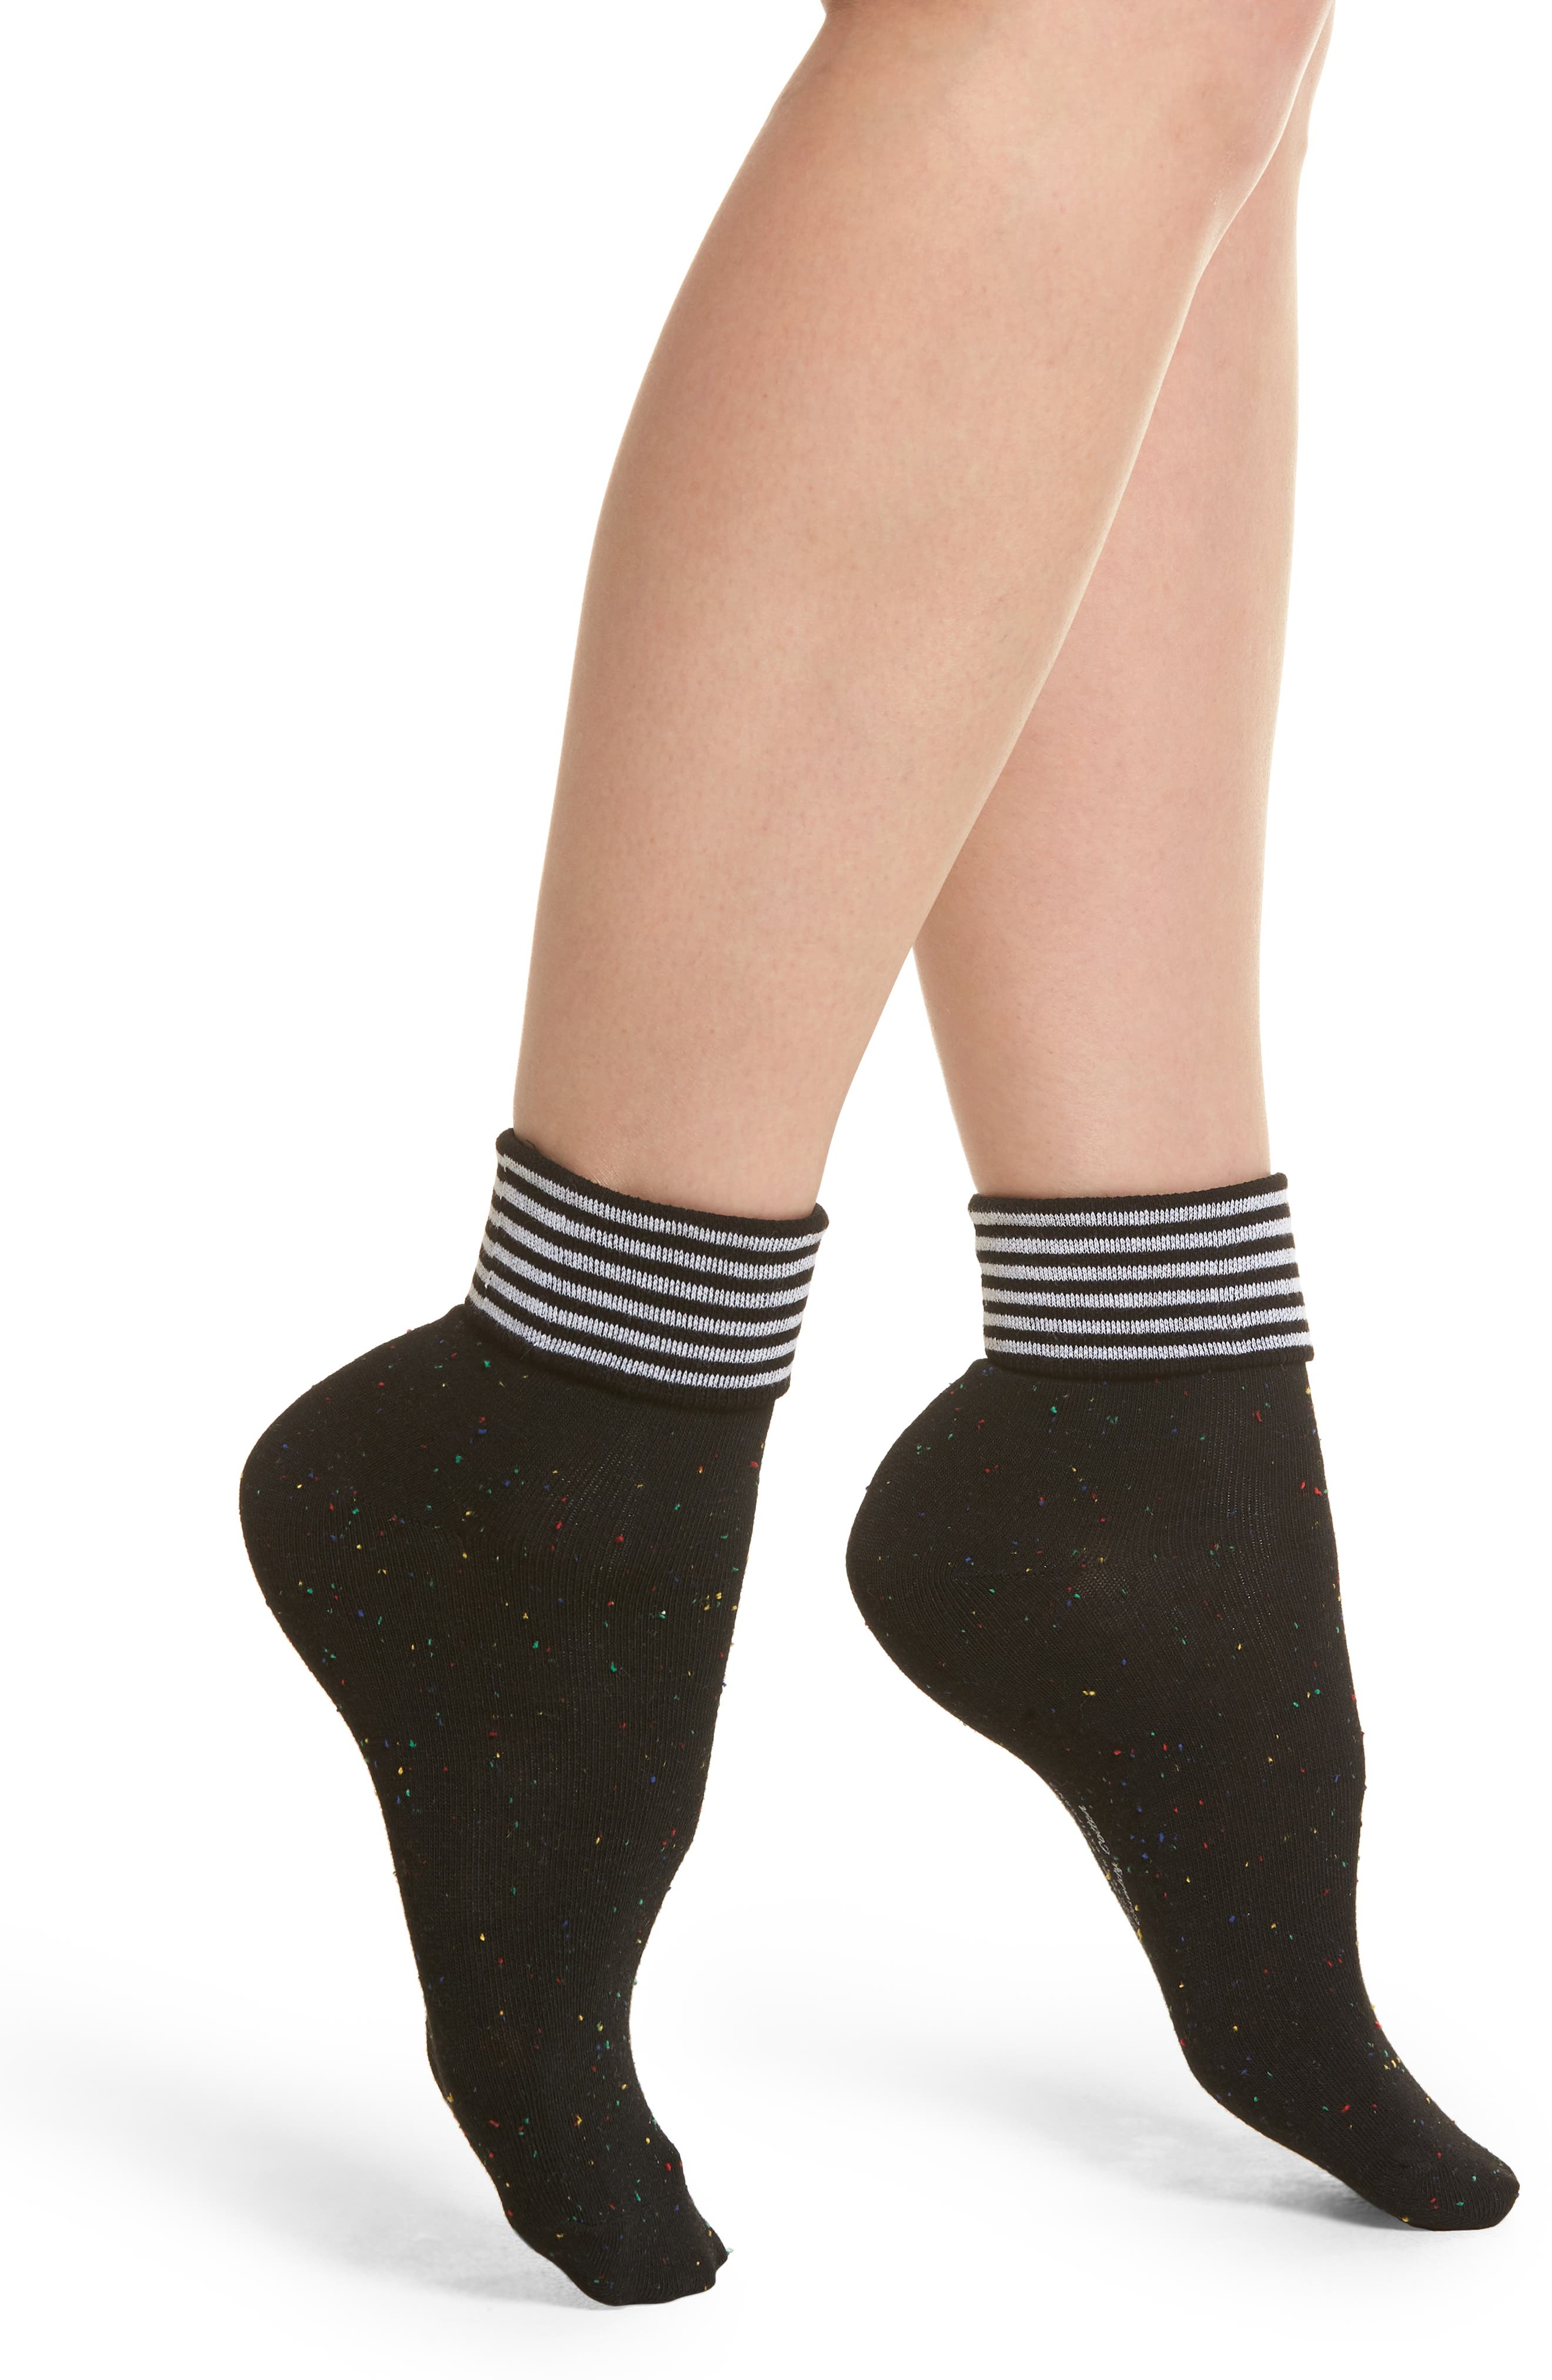 Tina Foldover Ankle Socks,                         Main,                         color, 001